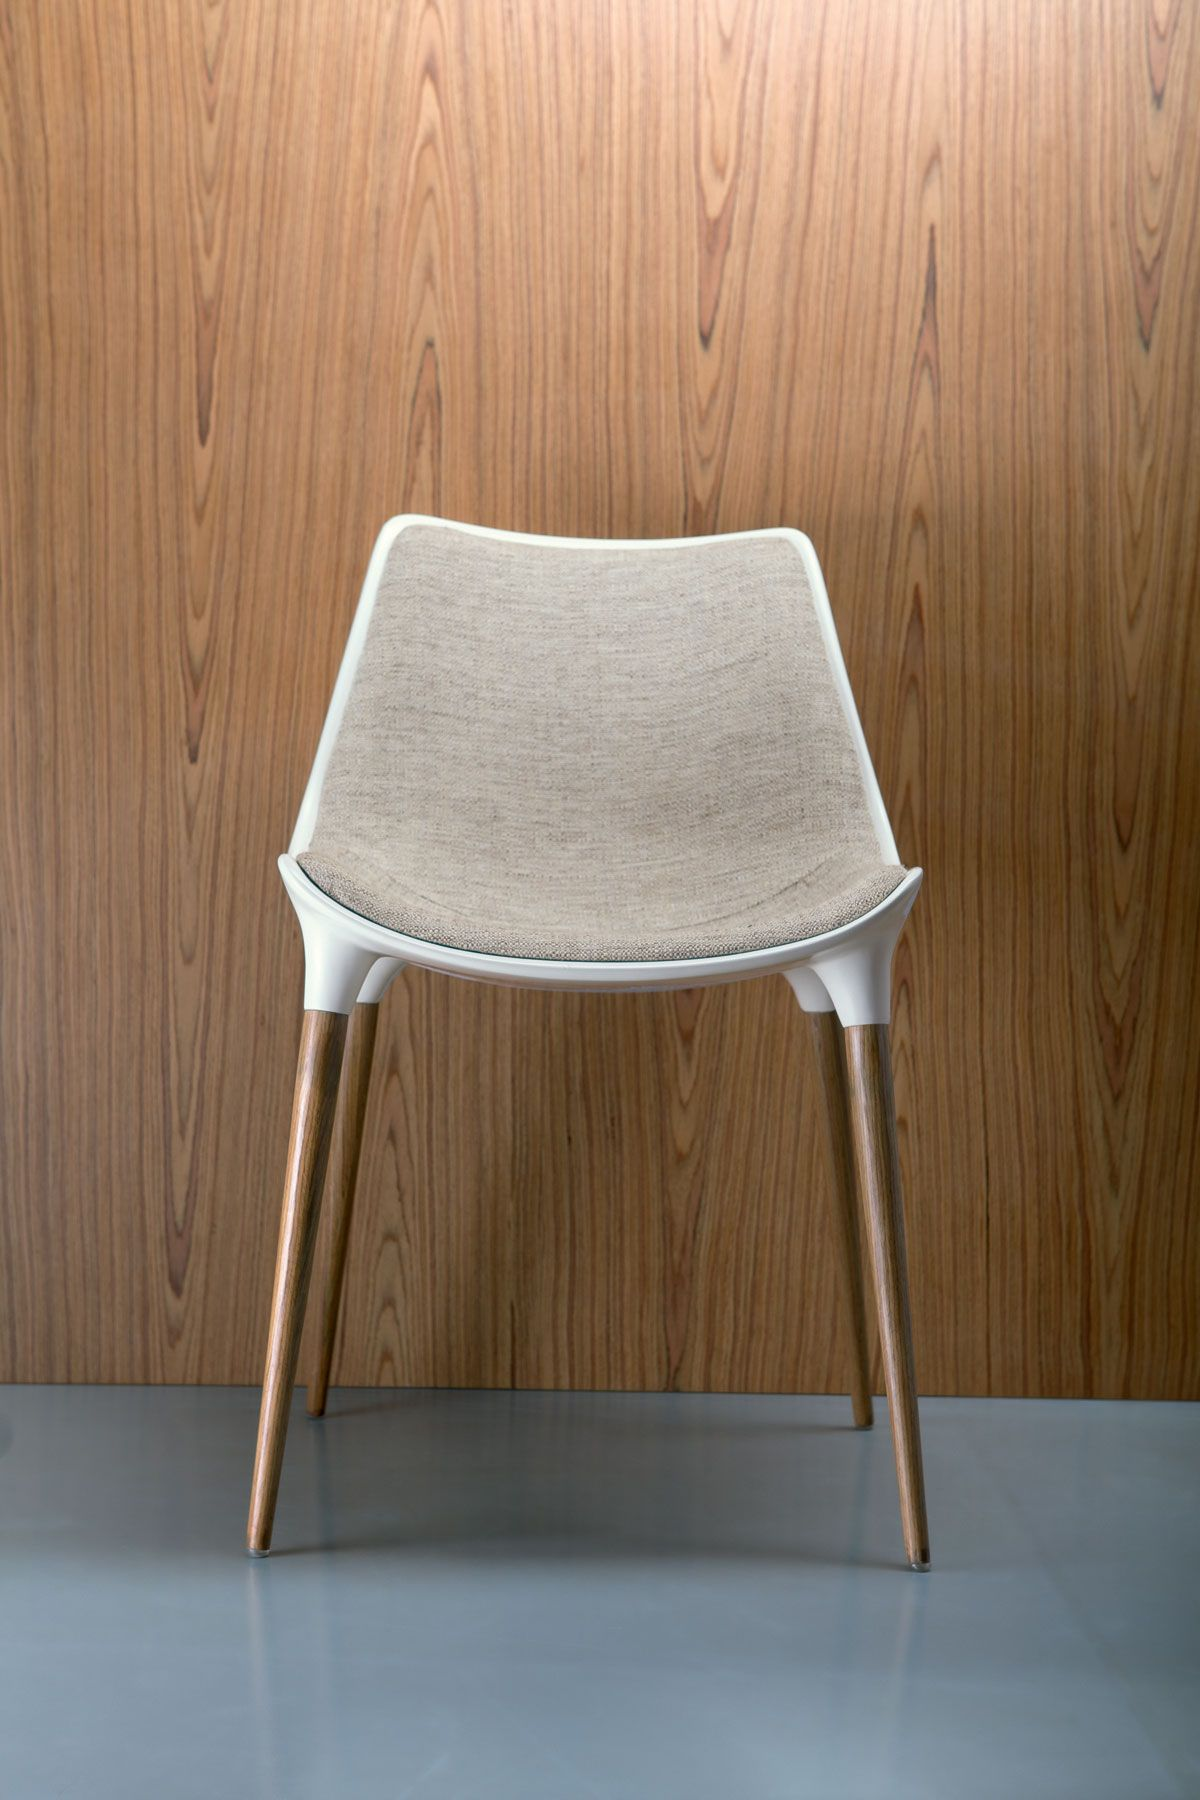 The special edition langham dining chair features modern curves with mid century flare chair